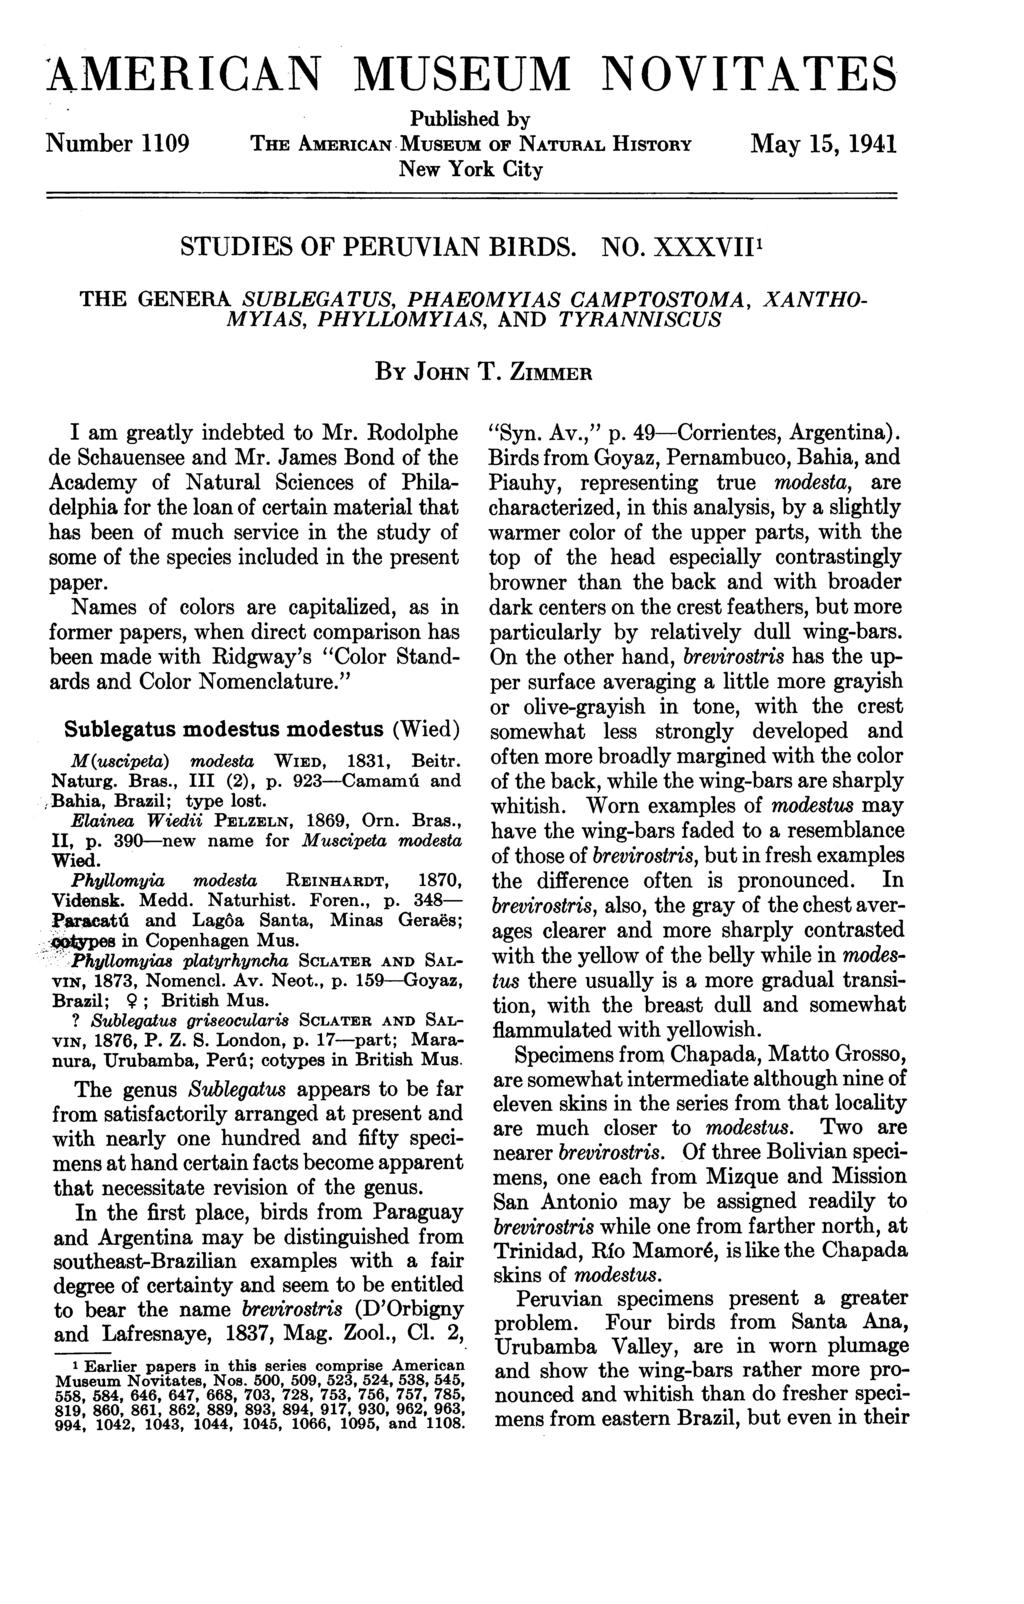 AMERICAN MUSEUM NOVITATES Number 1109 Published by THE AMERICAN MUSEUM OF NATURAL HISTORY New York City STUDIES OF PERUVIAN BIRDS. NO. XXXVII' May 15, 1941 THE GENERA SUBLEGATUS, PHAEOMYIAS CAMPTOSTOMA, XANTHO- MYIAS, PHYLLOMYIAS, AND TYRANNISCUS BY JOHN T.